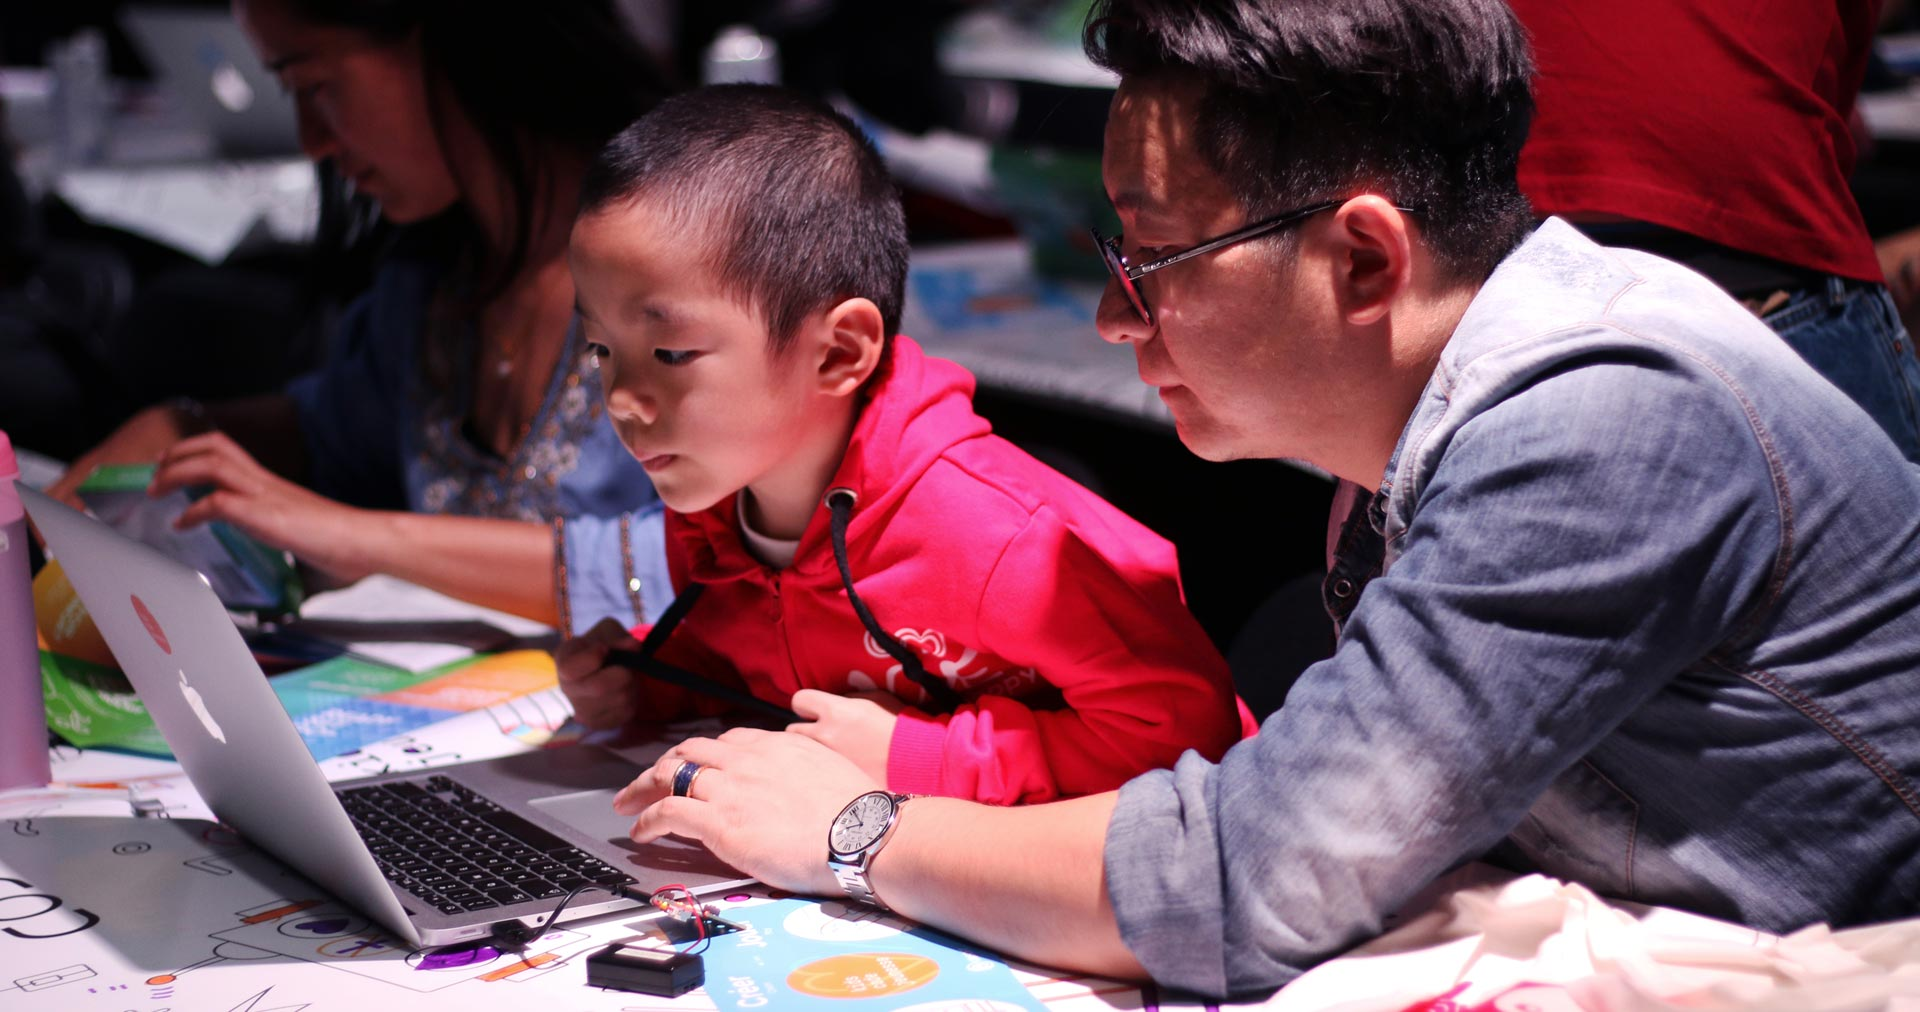 Programming to develop young people's interest in science and technology